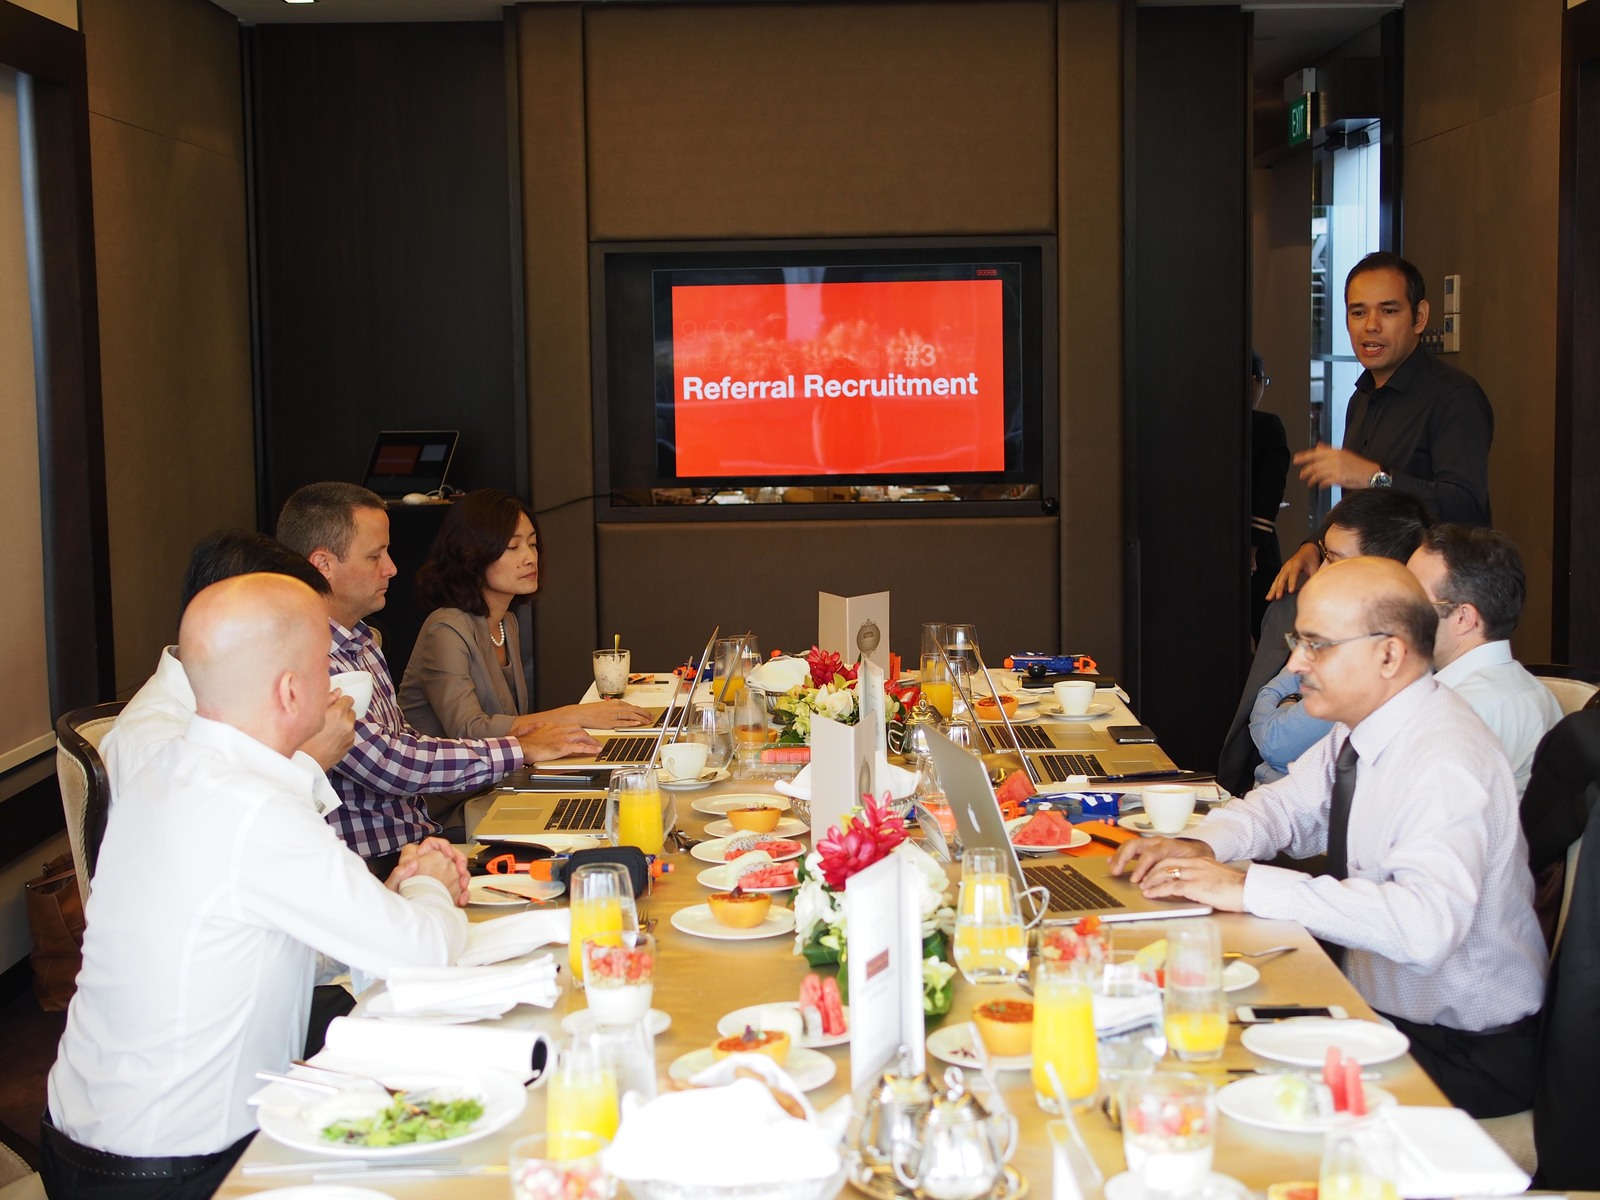 HR Leadership Roundtable in Singapore by Maximum - Employer Branding